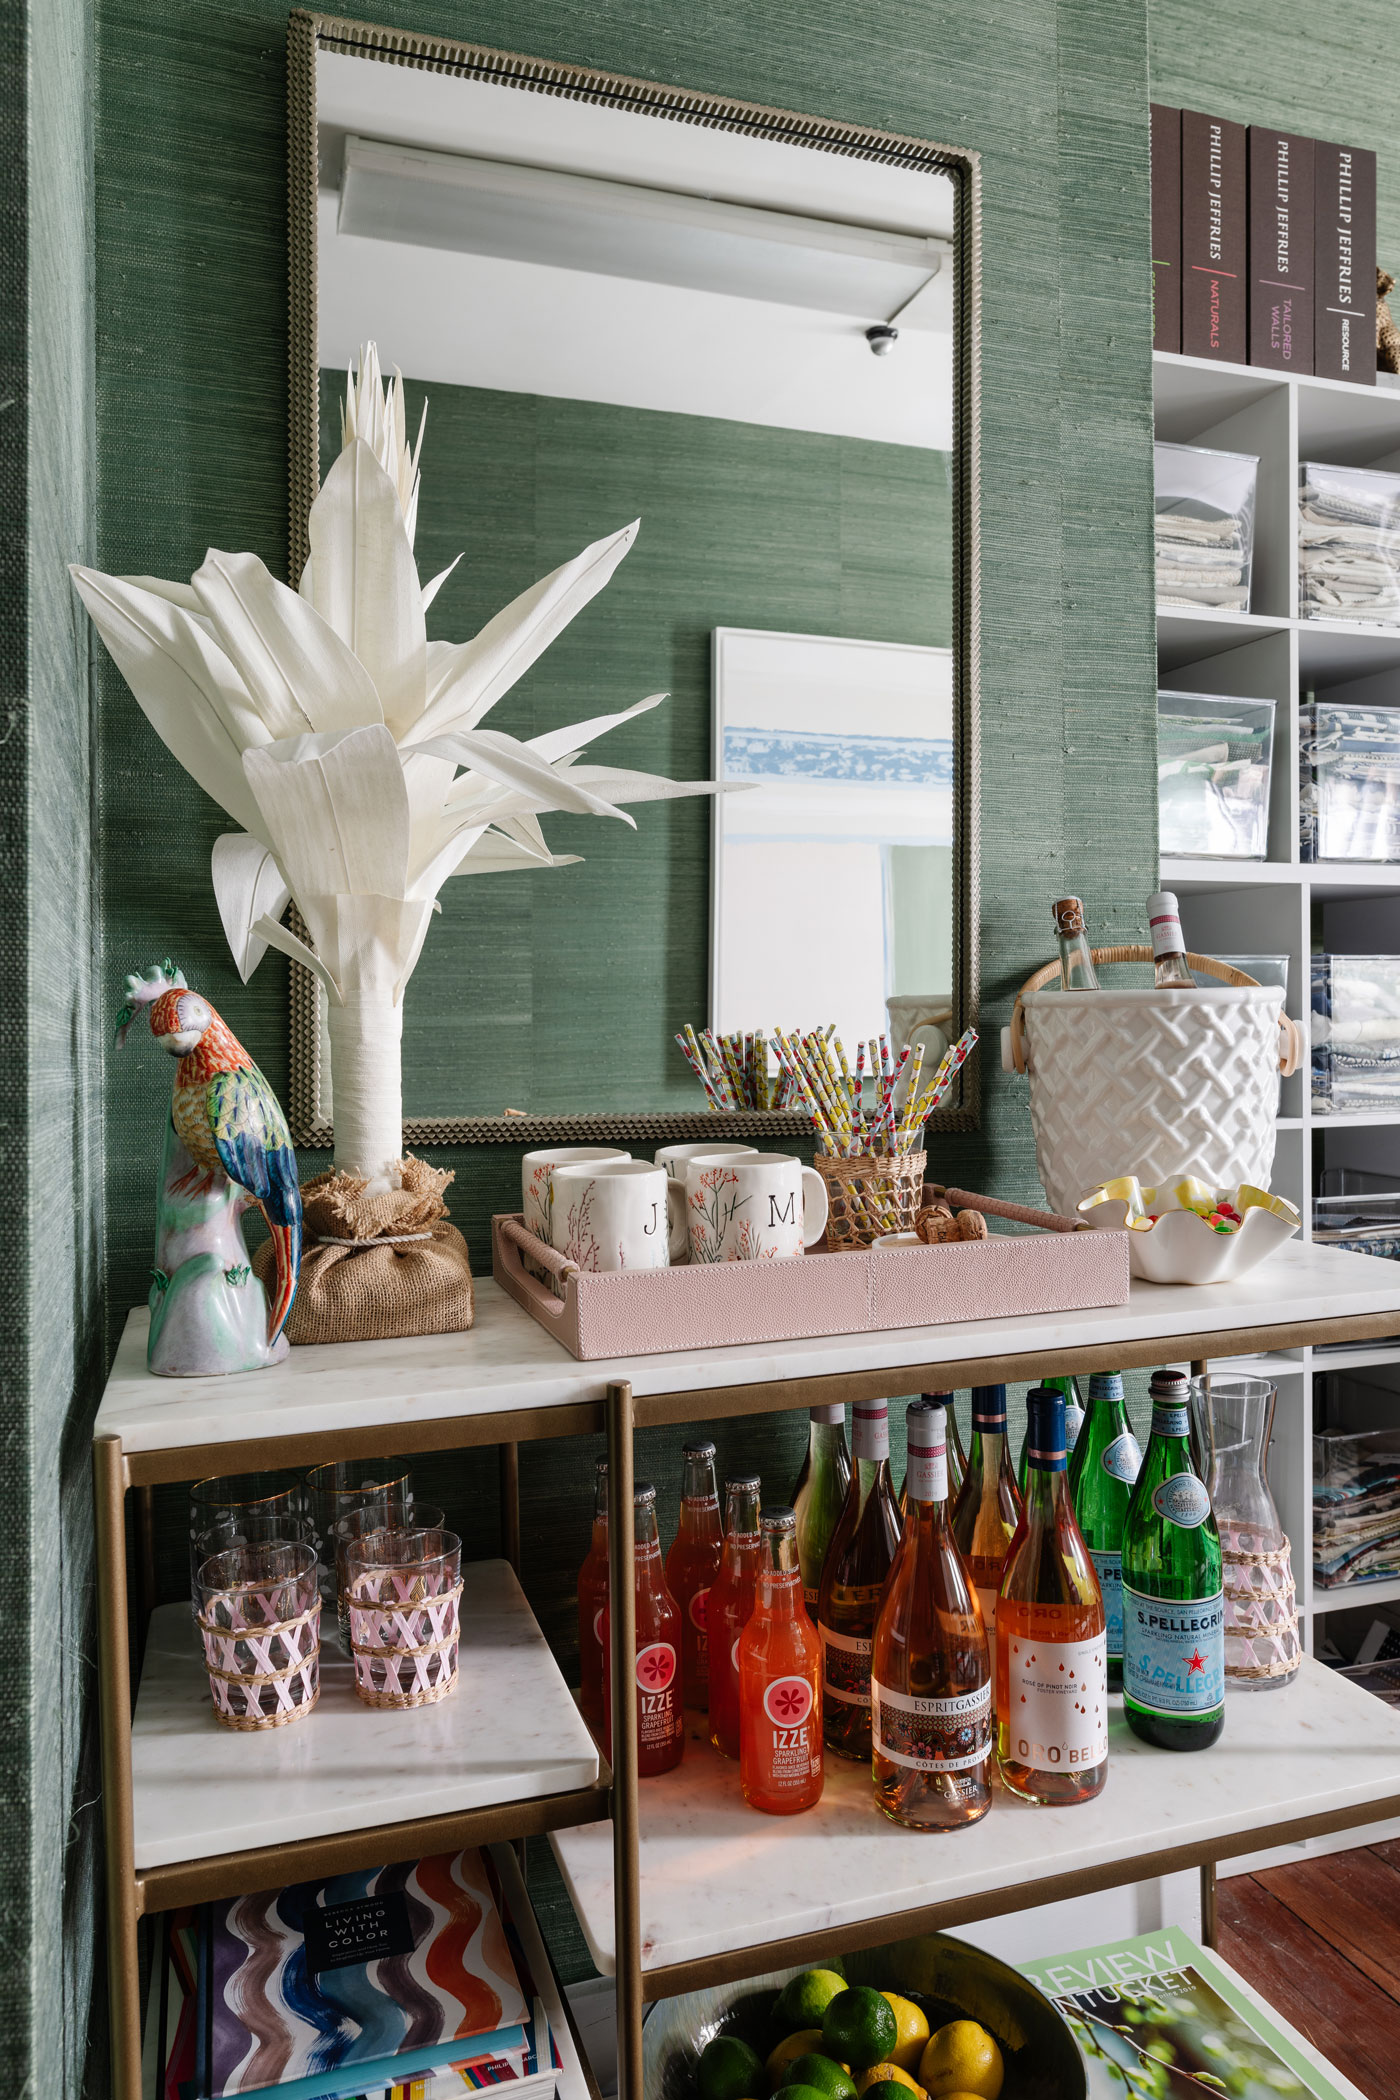 shelving in the corner of the office with drinks, glasses, straw and mugs